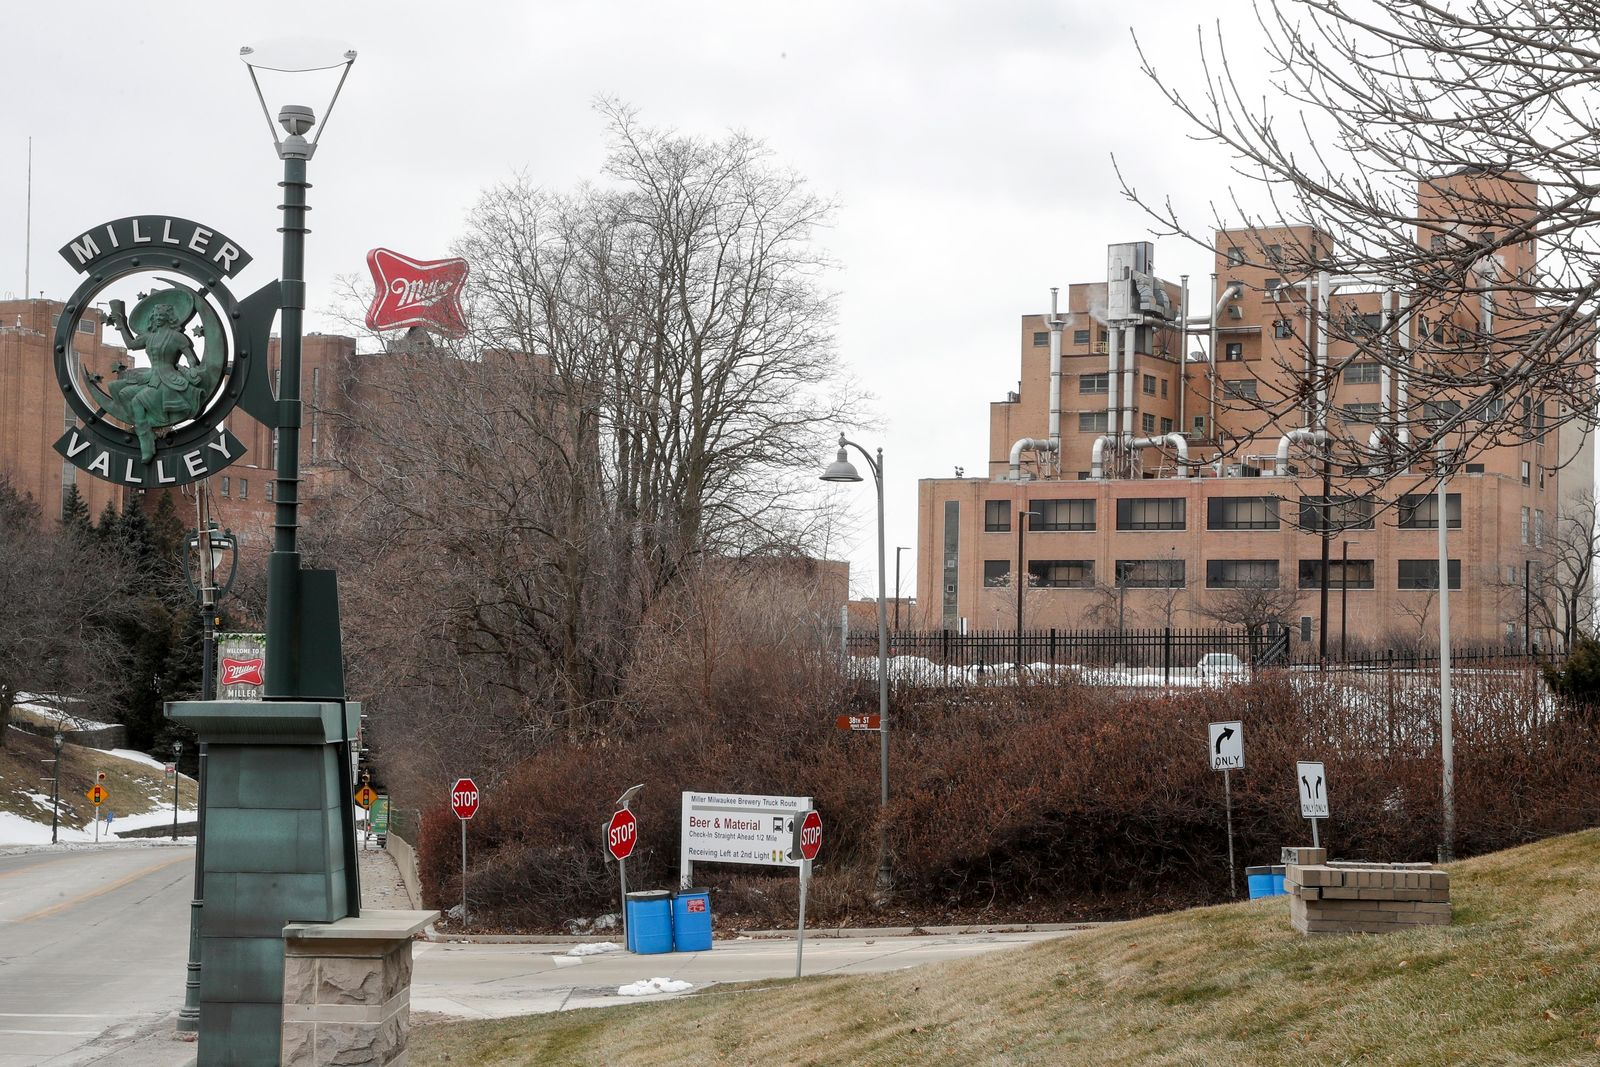 The Molson Coors facility is seen Thursday Feb. 27, 2020, in Milwaukee. An employee at the historic Molson Coors facility shot and killed five co-workers Wednesday afternoon and then turned the gun on himself. Six people, including the shooter, were killed on Wednesday, Feb. 26, 2020 at the facility. The brewery remained closed Thursday.  (AP Photo/Morry Gash)